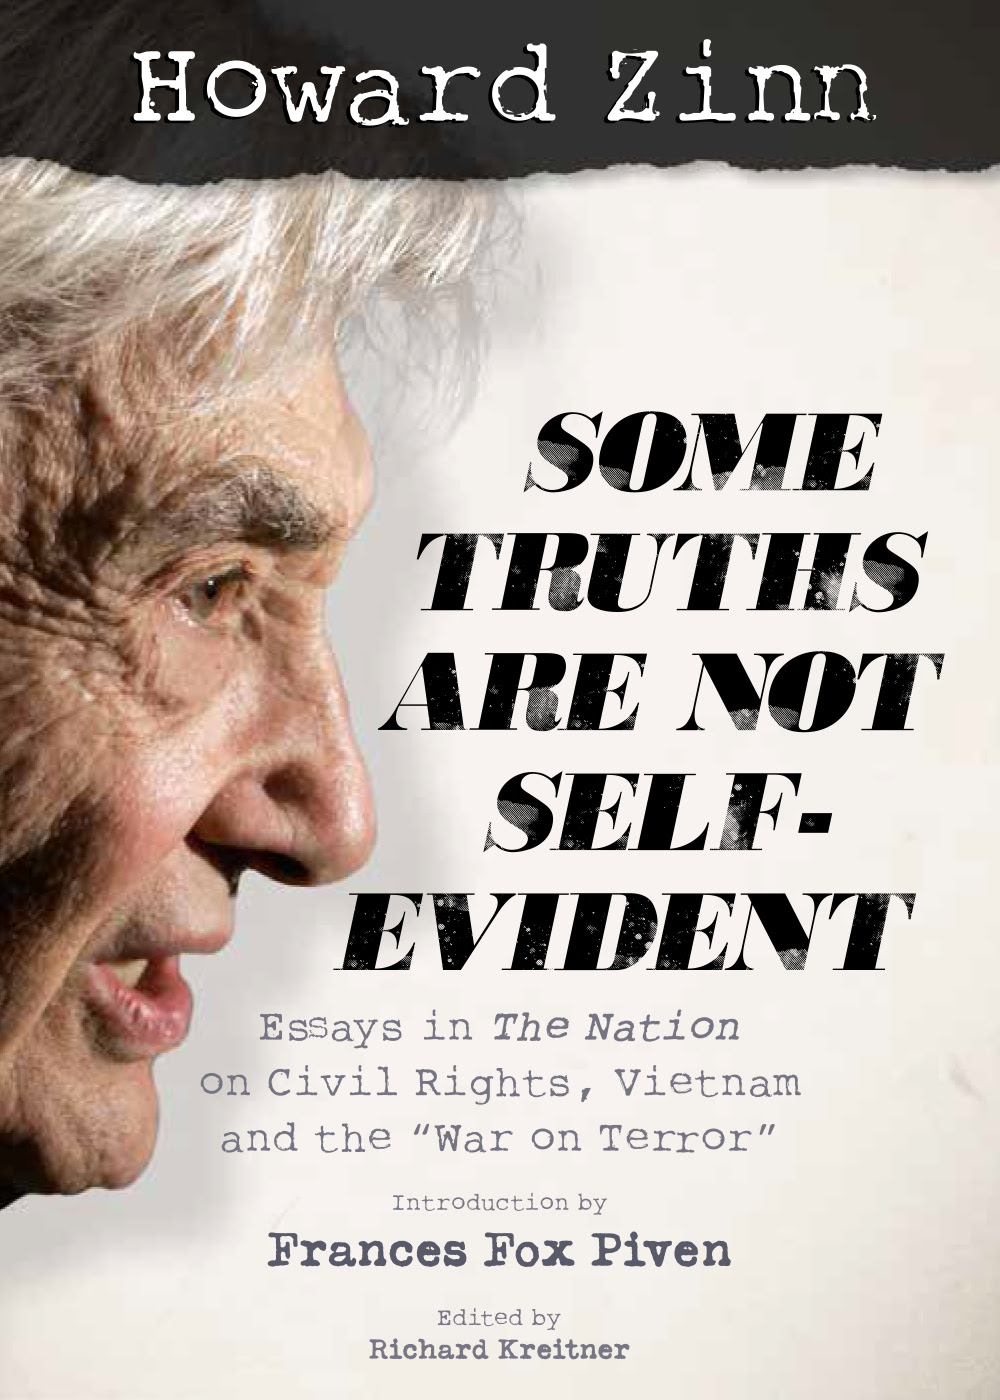 howard zinn chapter 15 In chapter 6, howard zinn talks about the role of women throughout the history of the united states he claimed that women were invisible and overlooked in the society this being a sign of their submerged status.